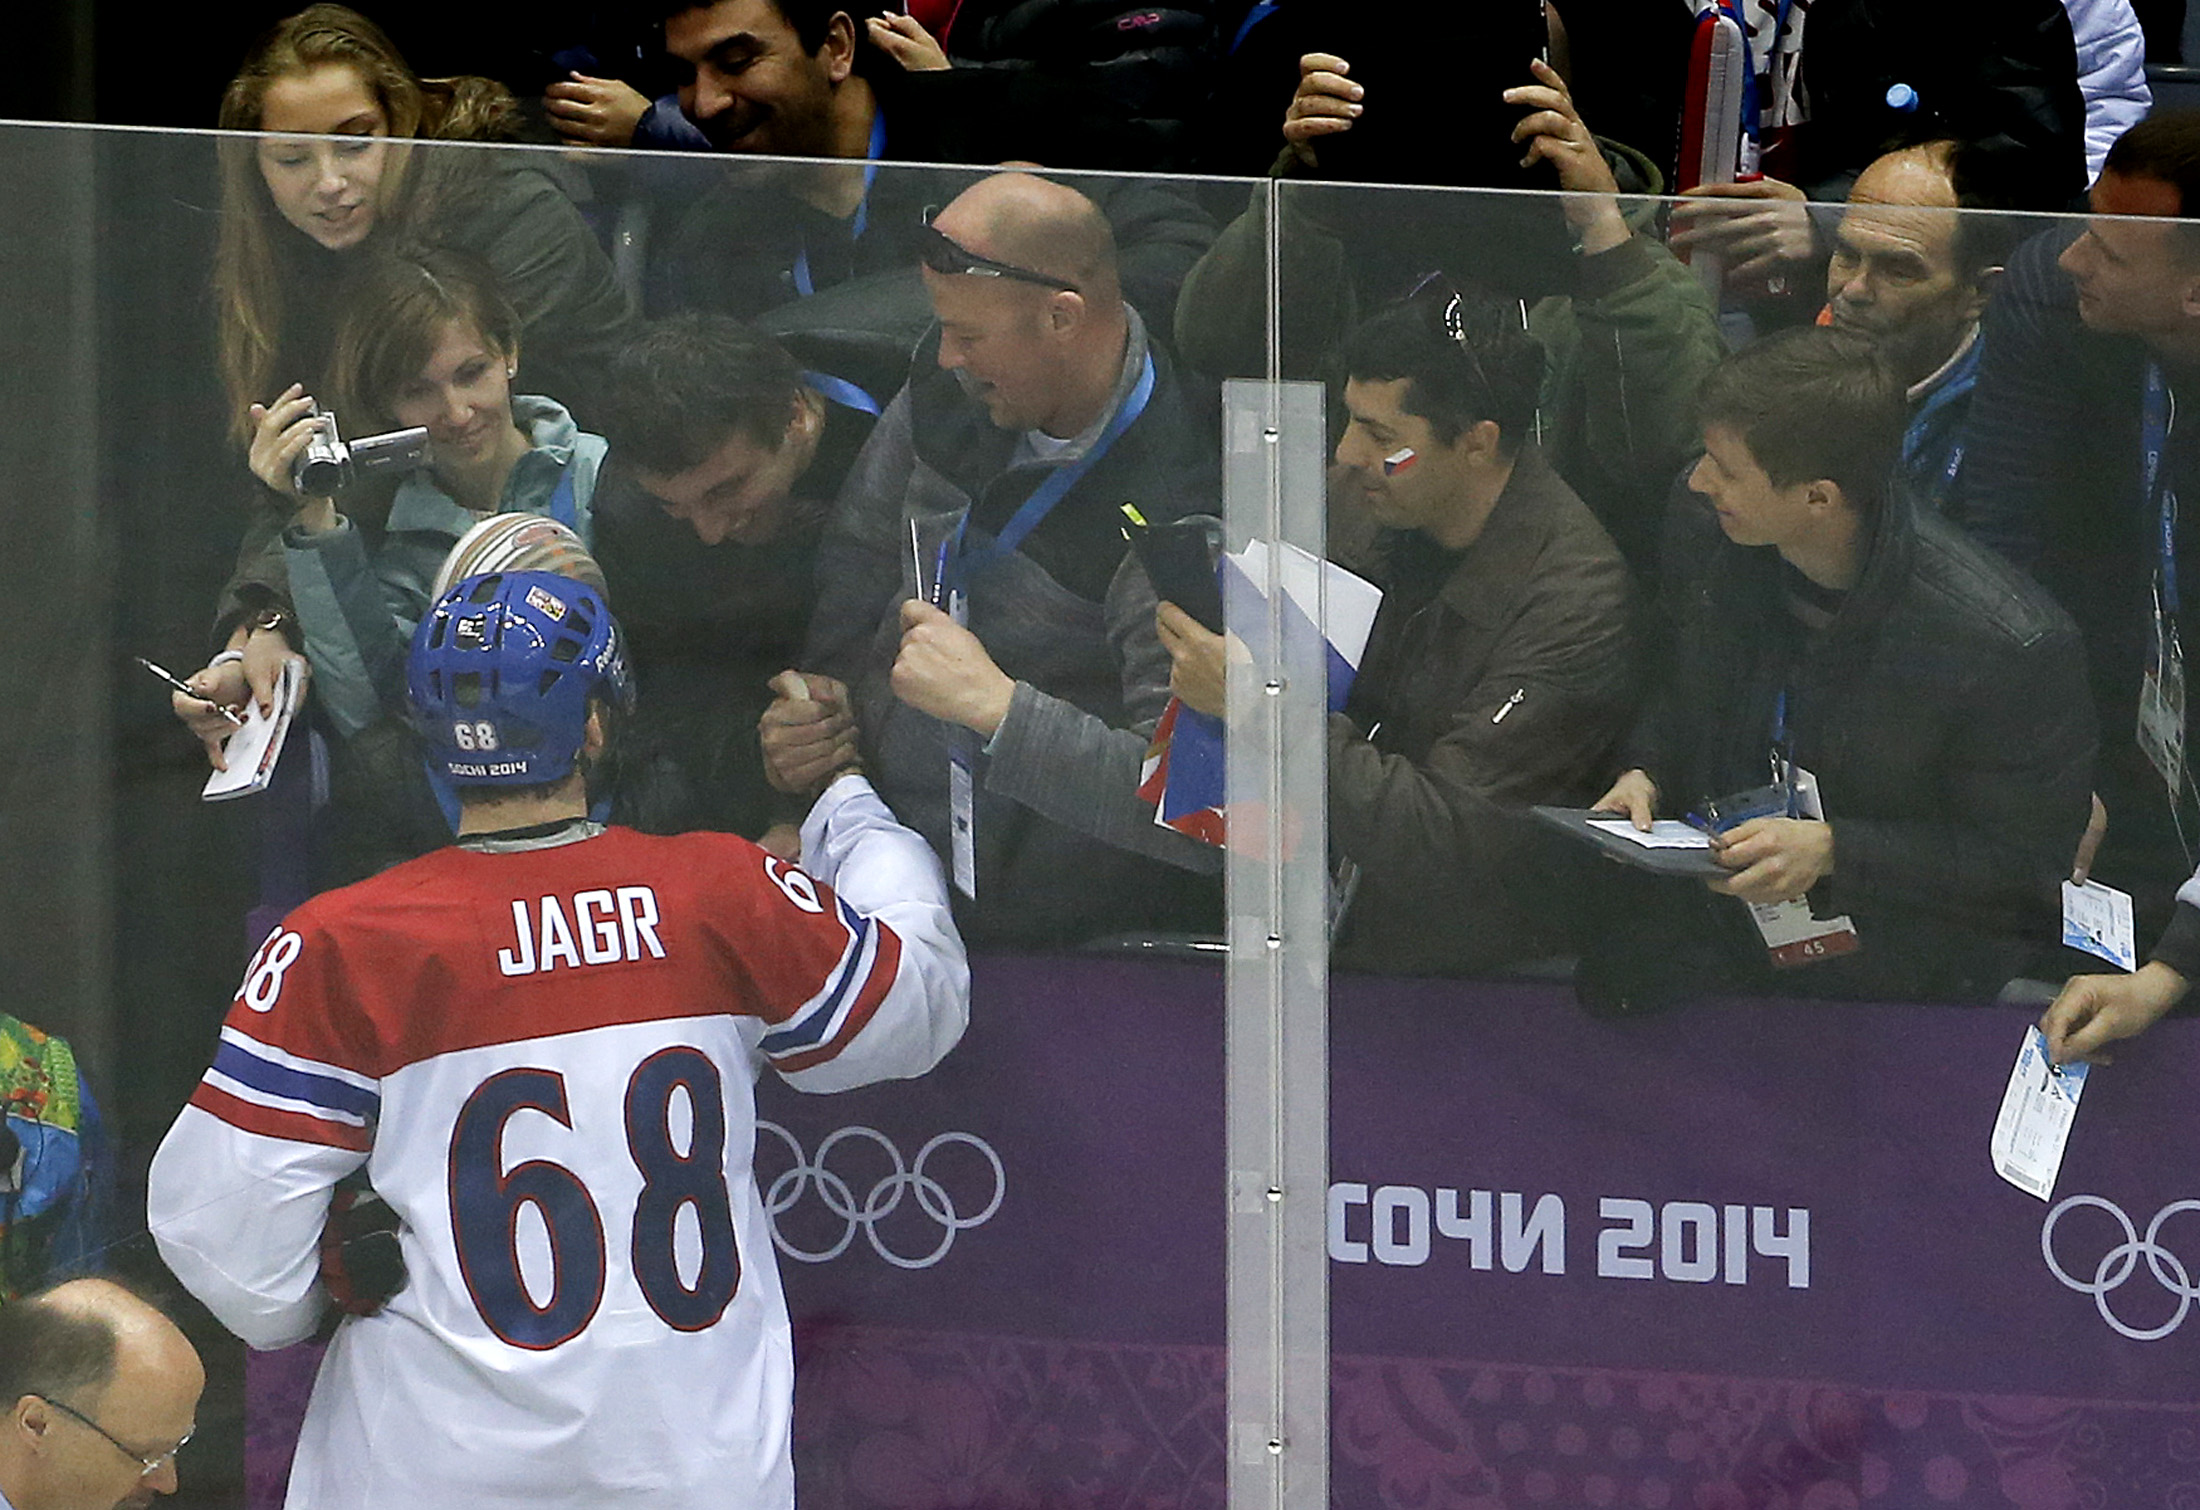 Czech Republic forward Jaromir Jagr greets fans after beating Latvia 4-2 during a men's ice hockey game at the 2014 Winter Olympics, Friday, Feb. 14, 2014, in Sochi, Russia. (AP Photo/Julio Cortez)